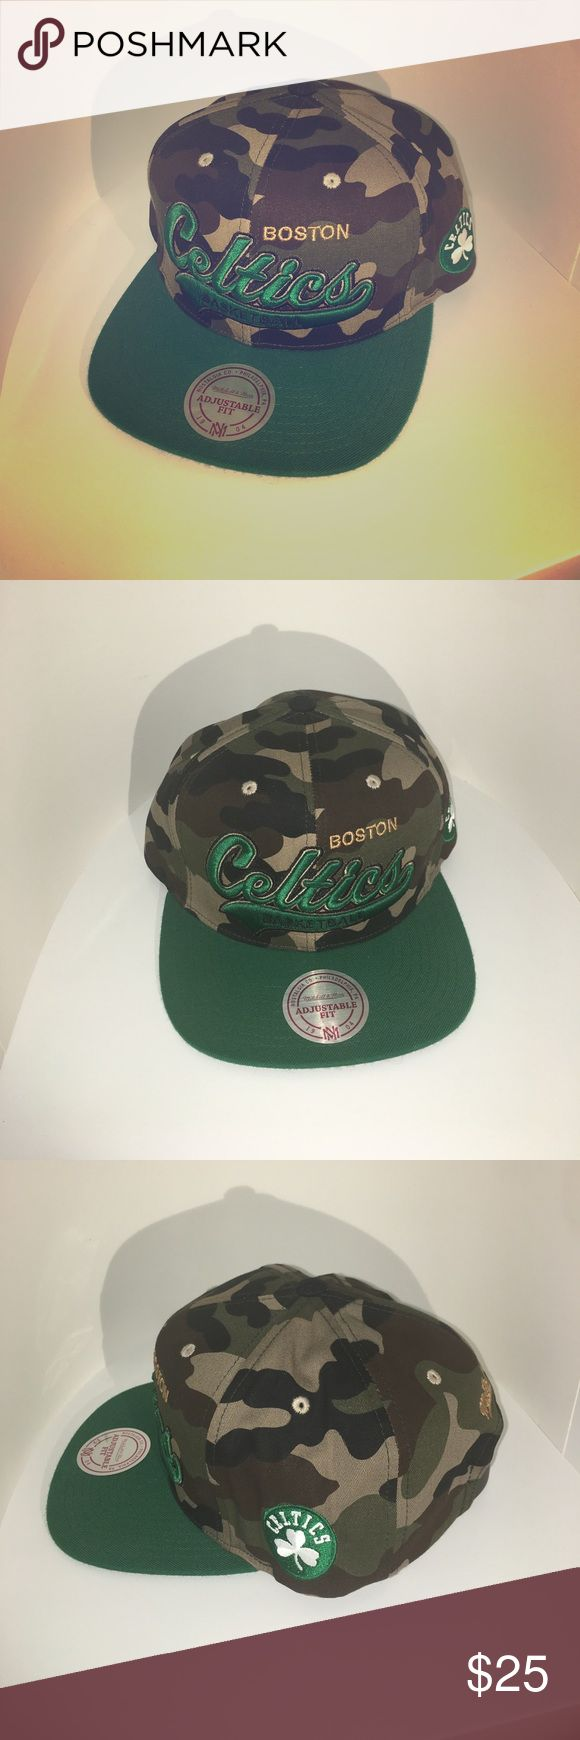 Mitchell and Ness Boston Celtics StrapBack Hat Mitchell and Ness NBA Boston Celtics leather strapback hat. Camouflage featuring green Celtics text on front and Celtics logo patch on side. Mitchell & Ness Accessories Hats